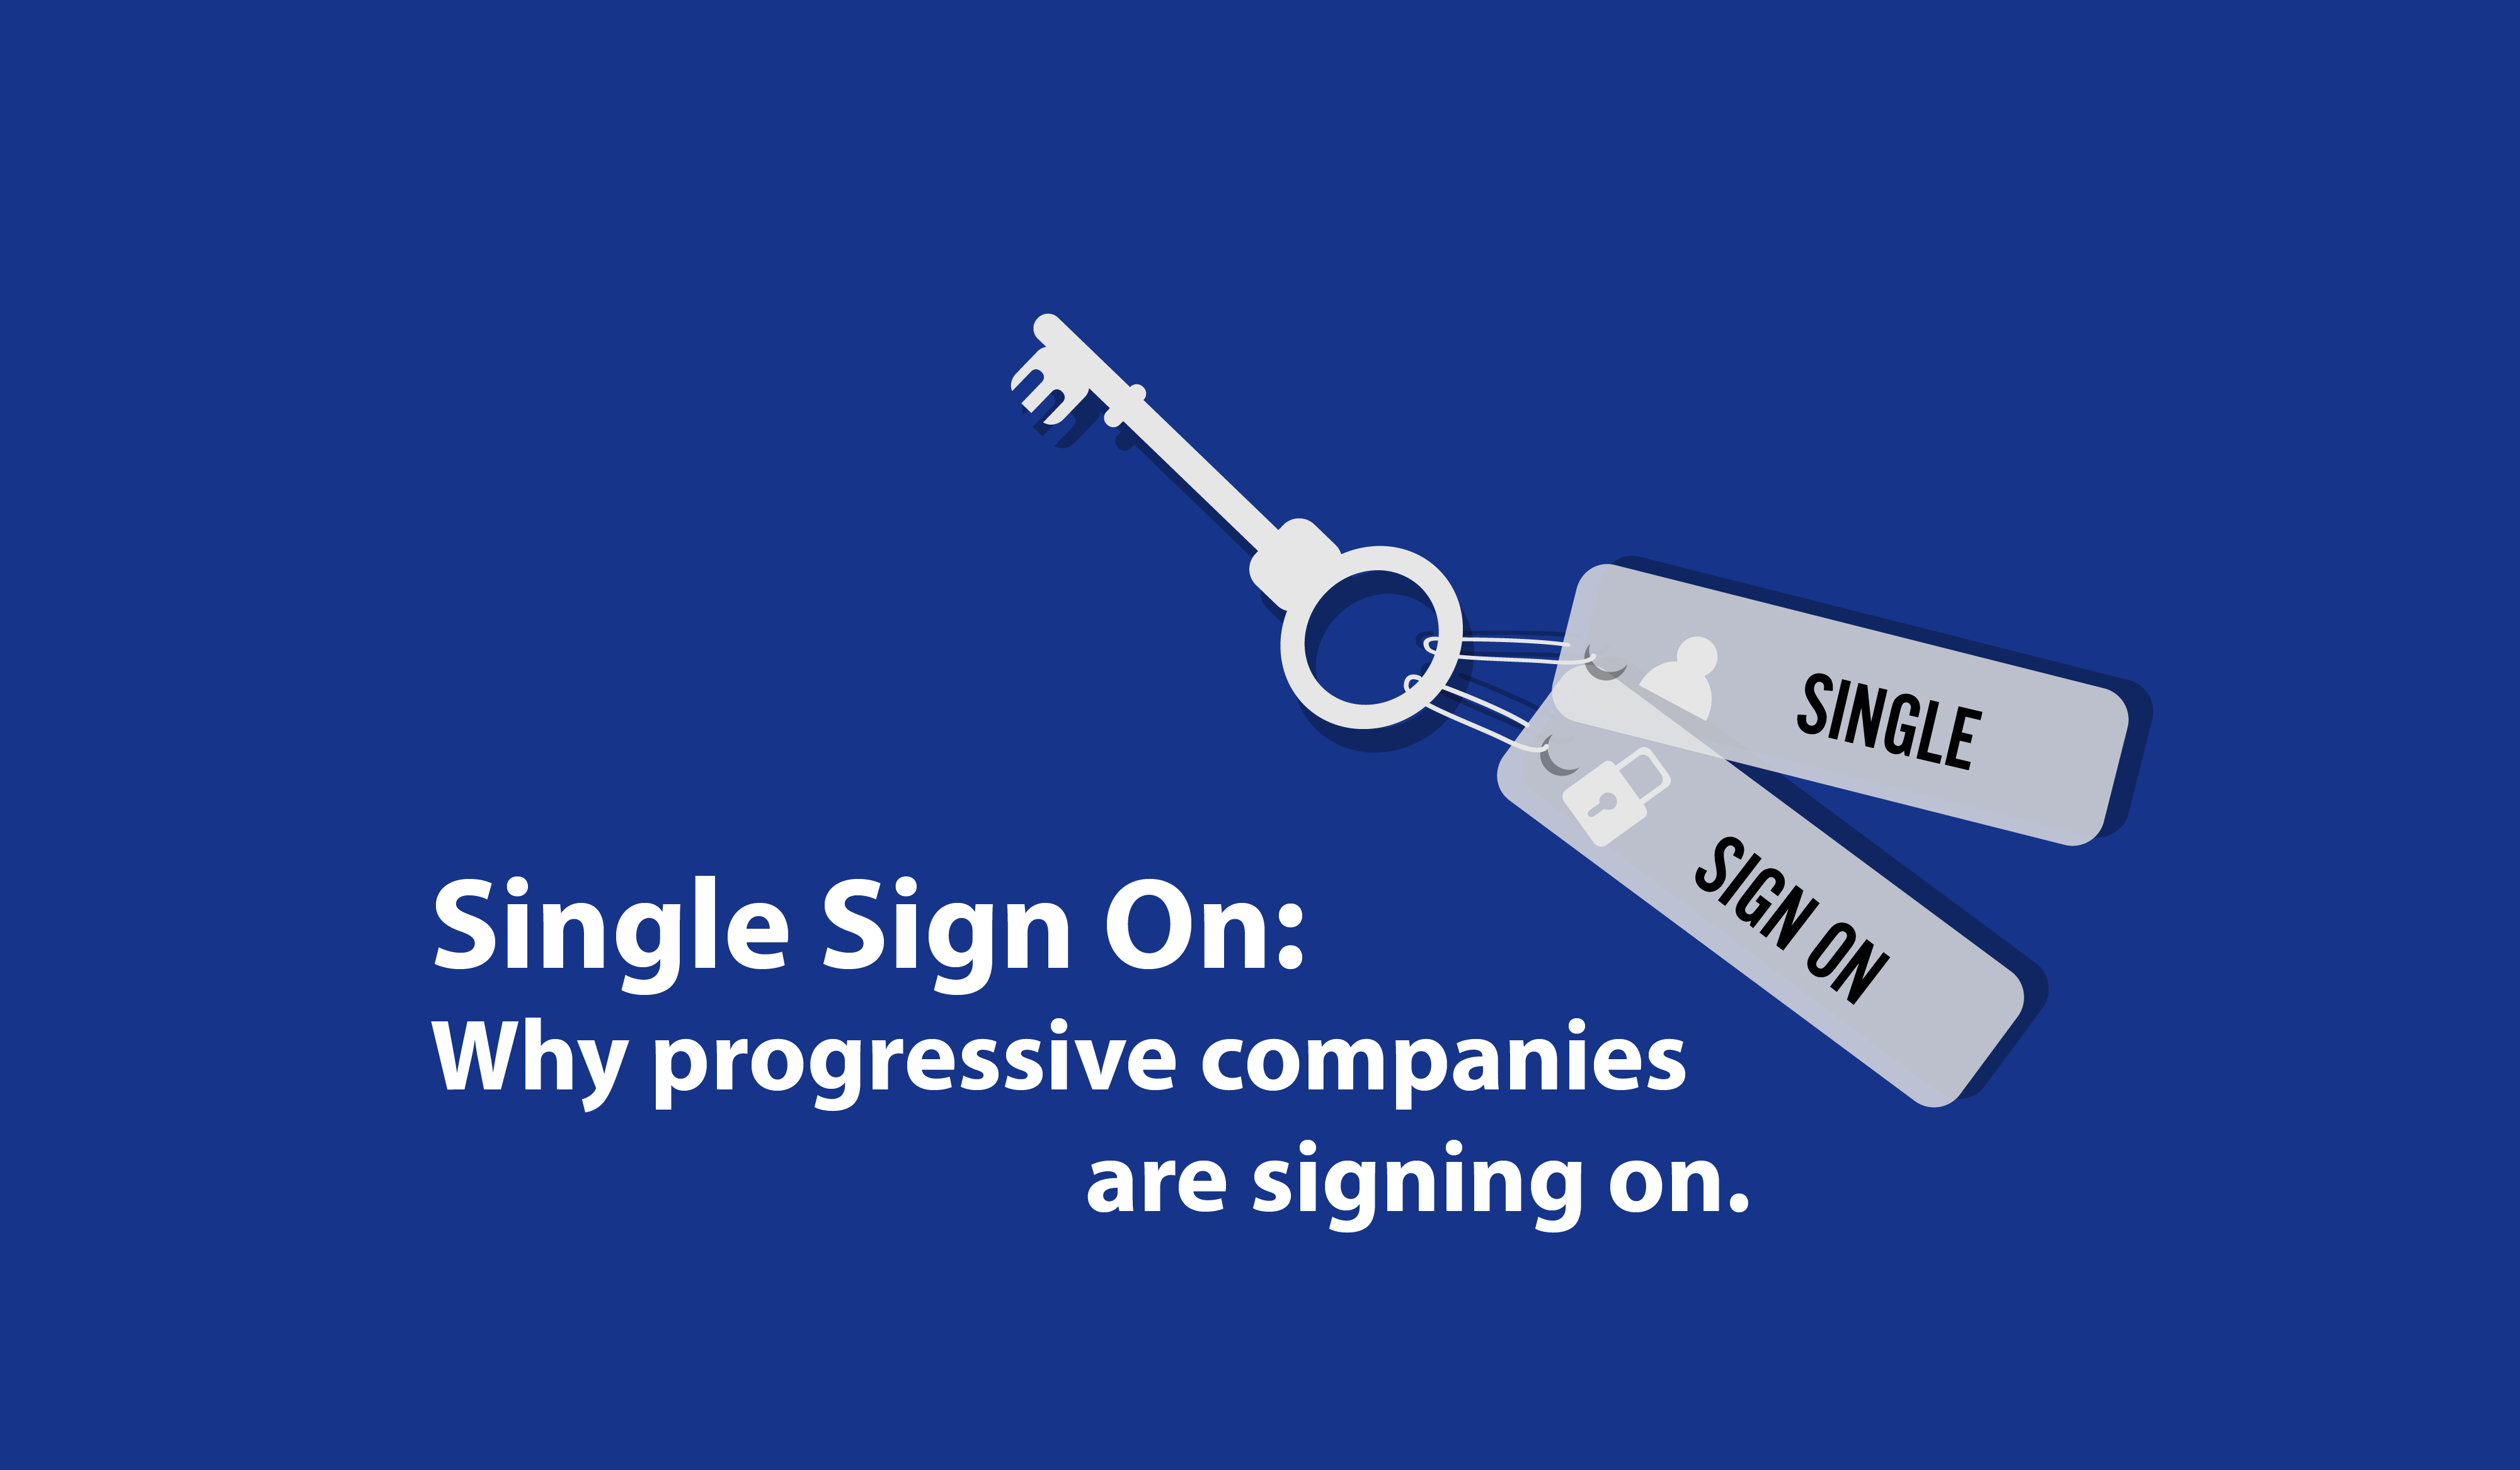 Single Sign On: Why progressive companies are signing on.